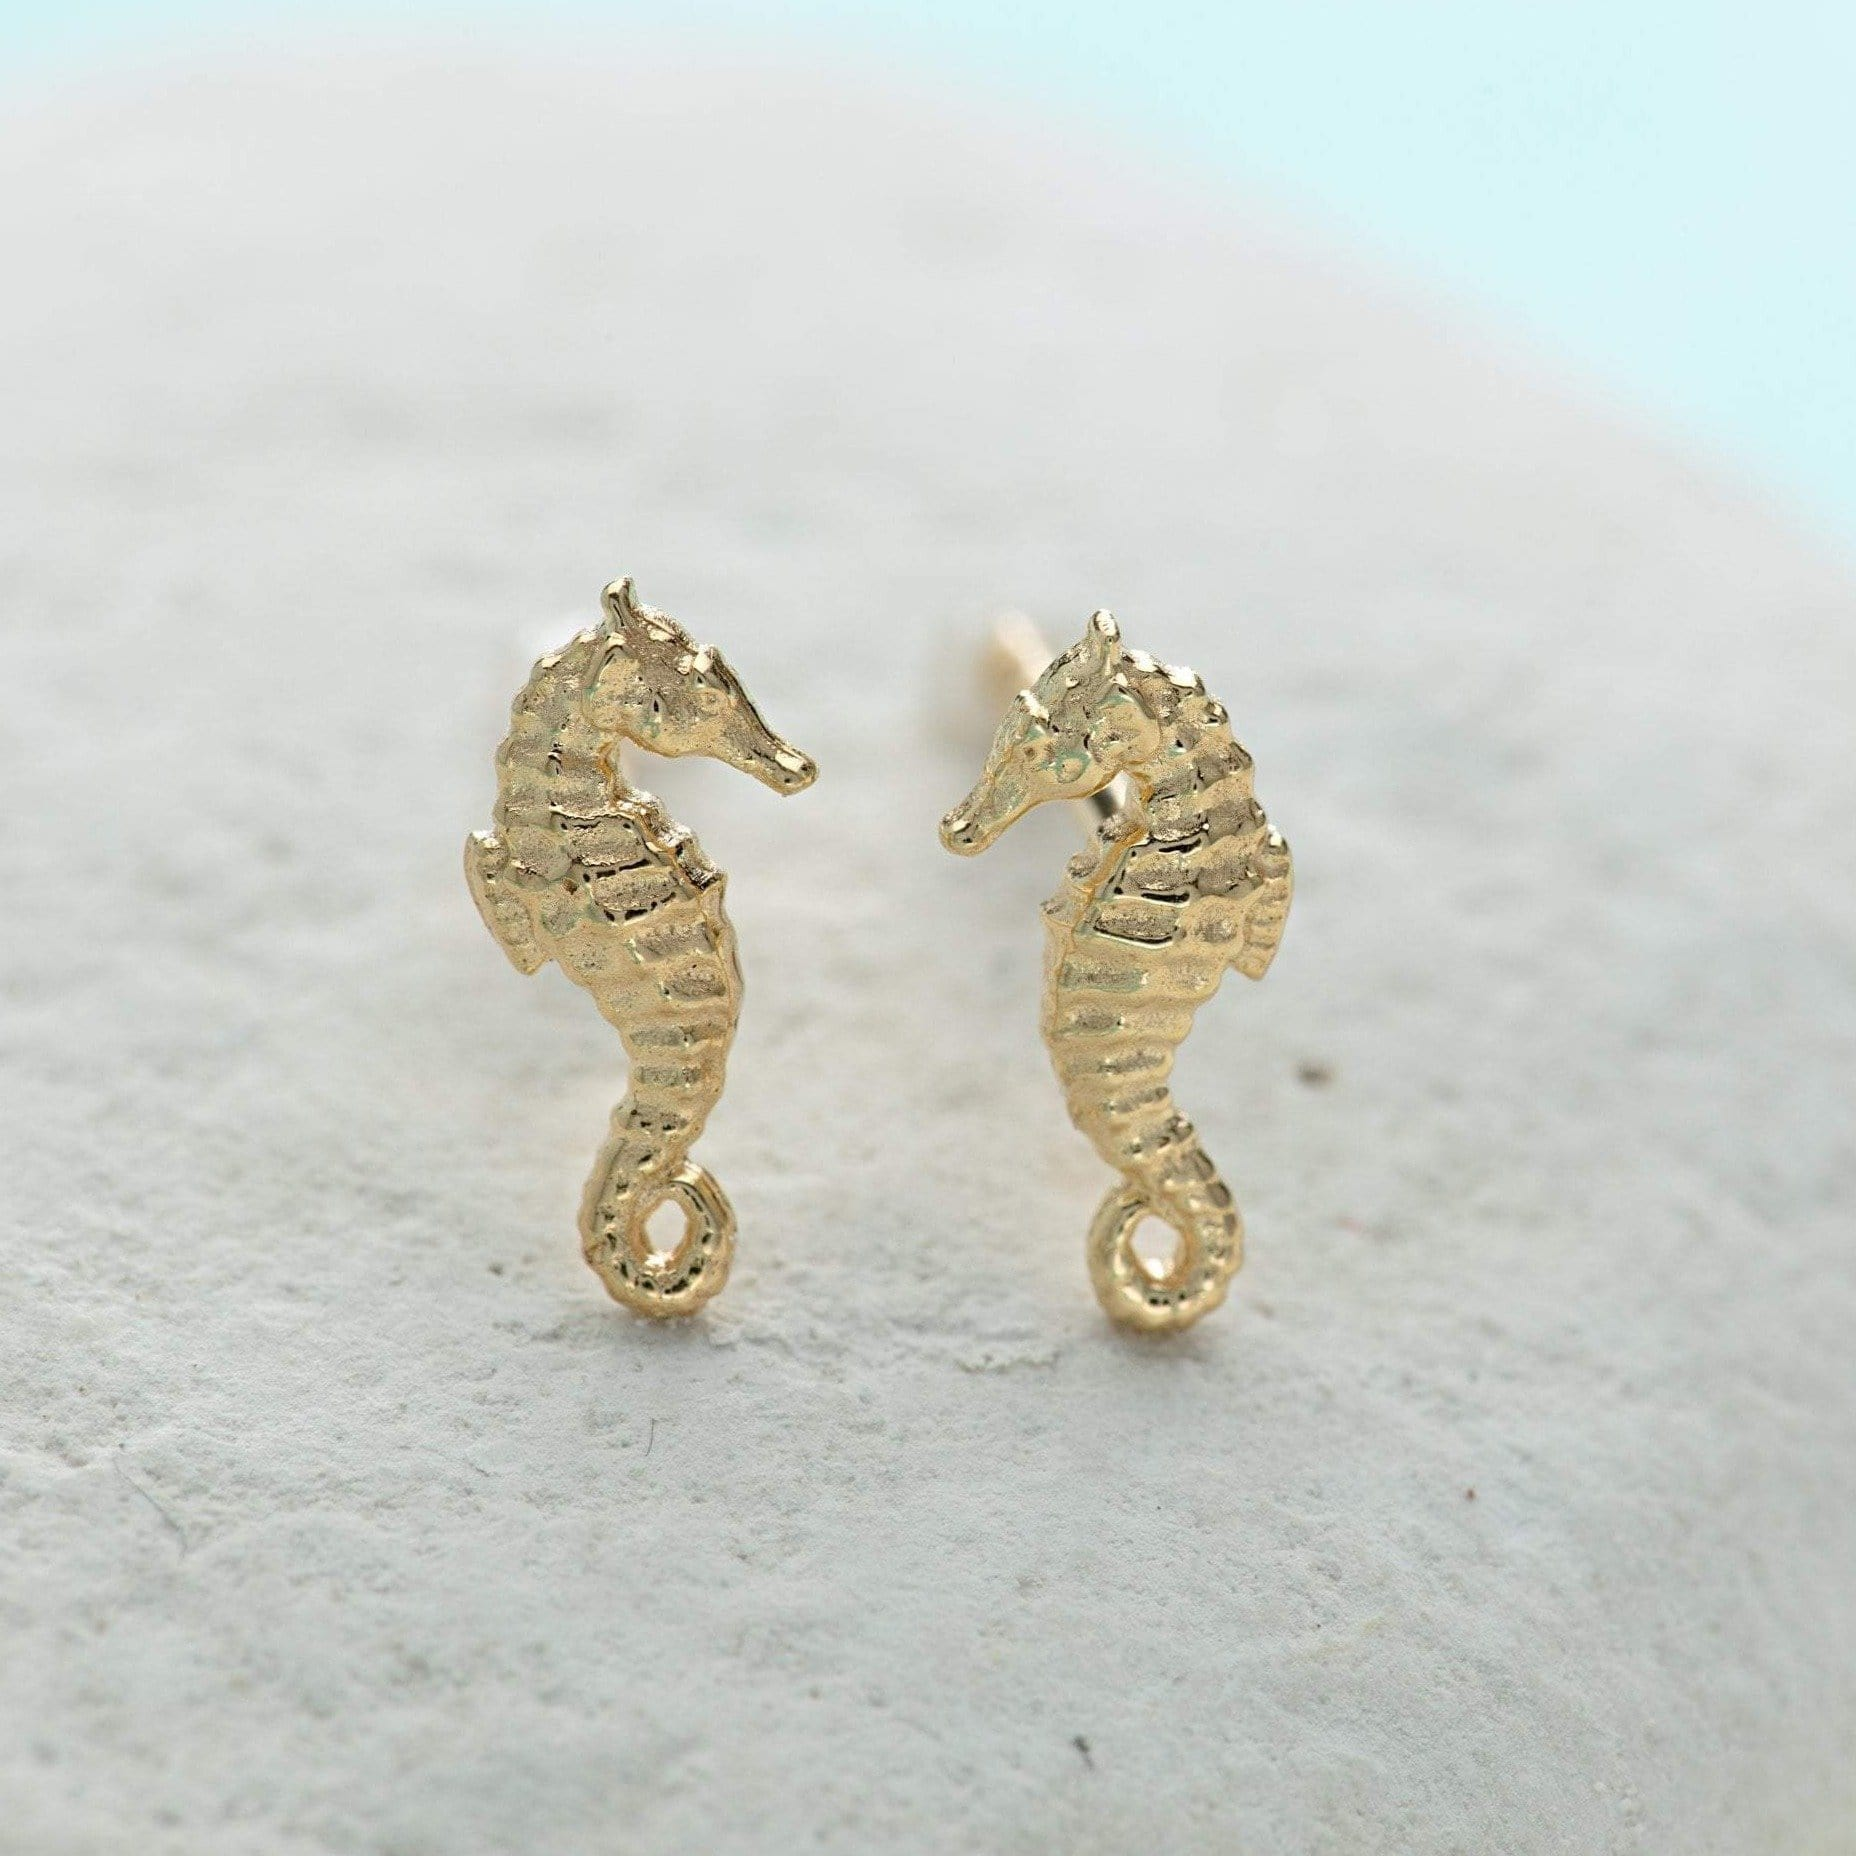 Gold Plated Seahorse Stud Earrings - Lily Charmed